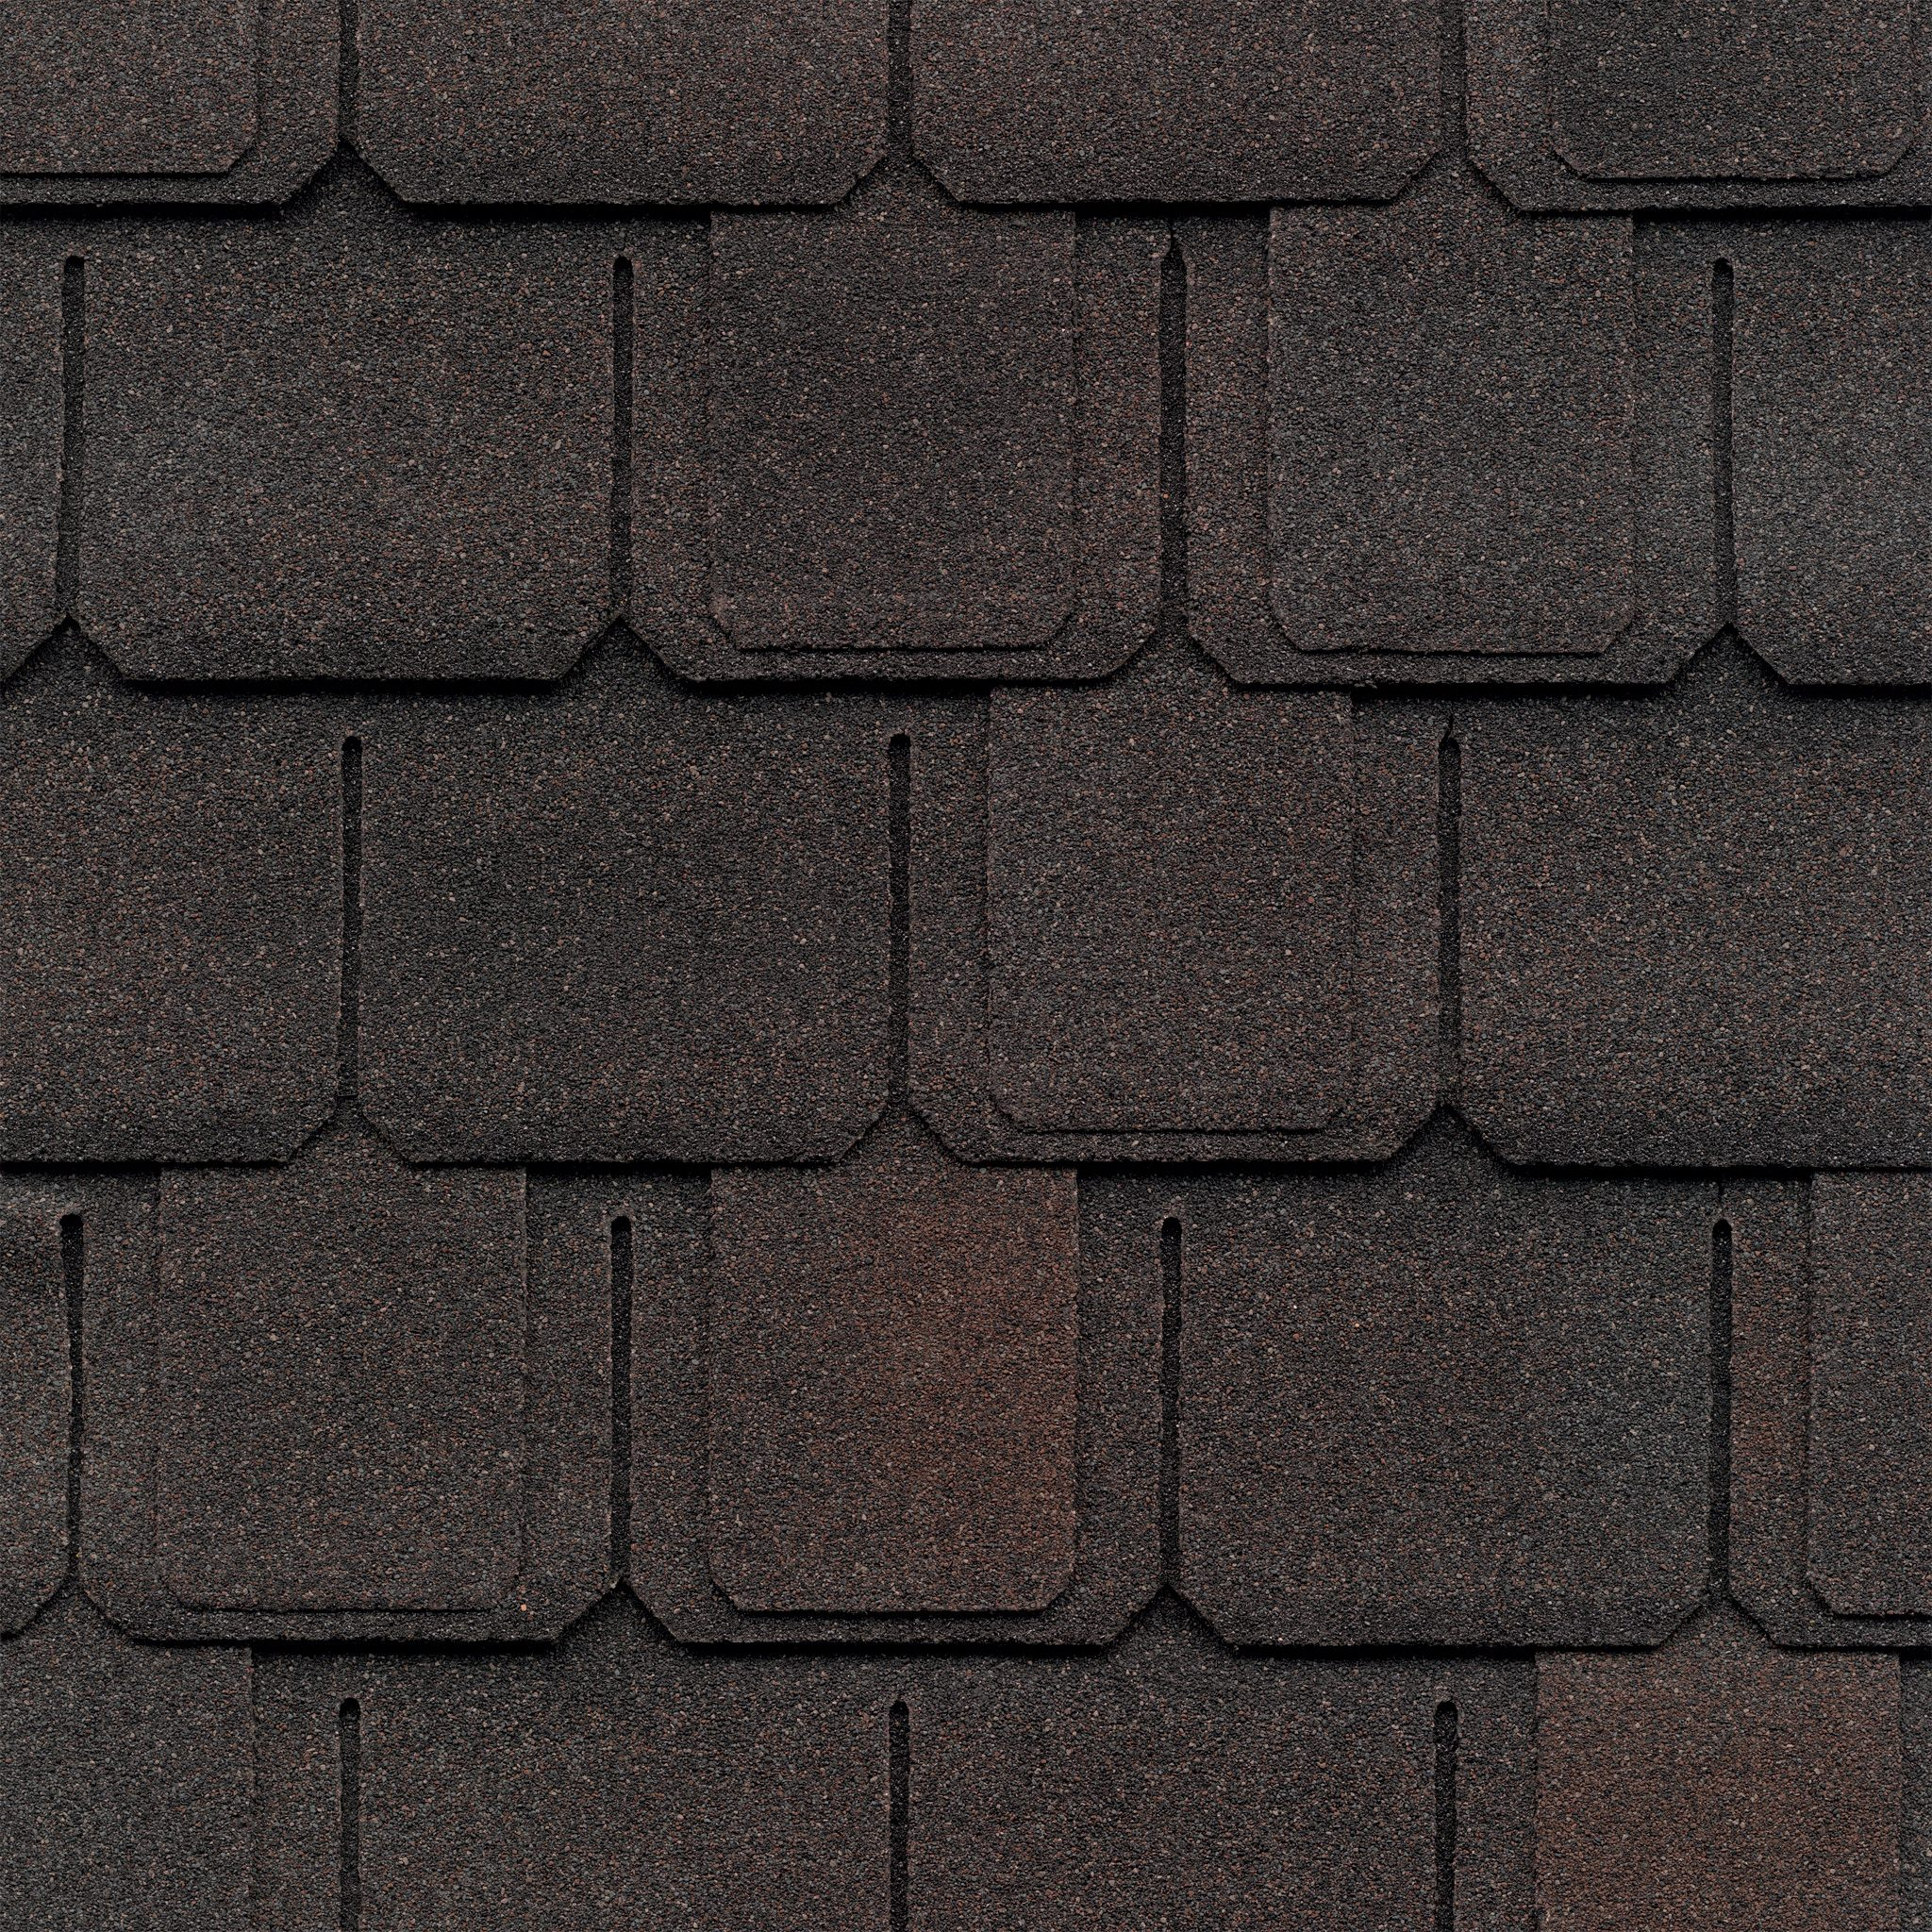 Close-up of GAF's Camelot Sheffield Black shingle swatch